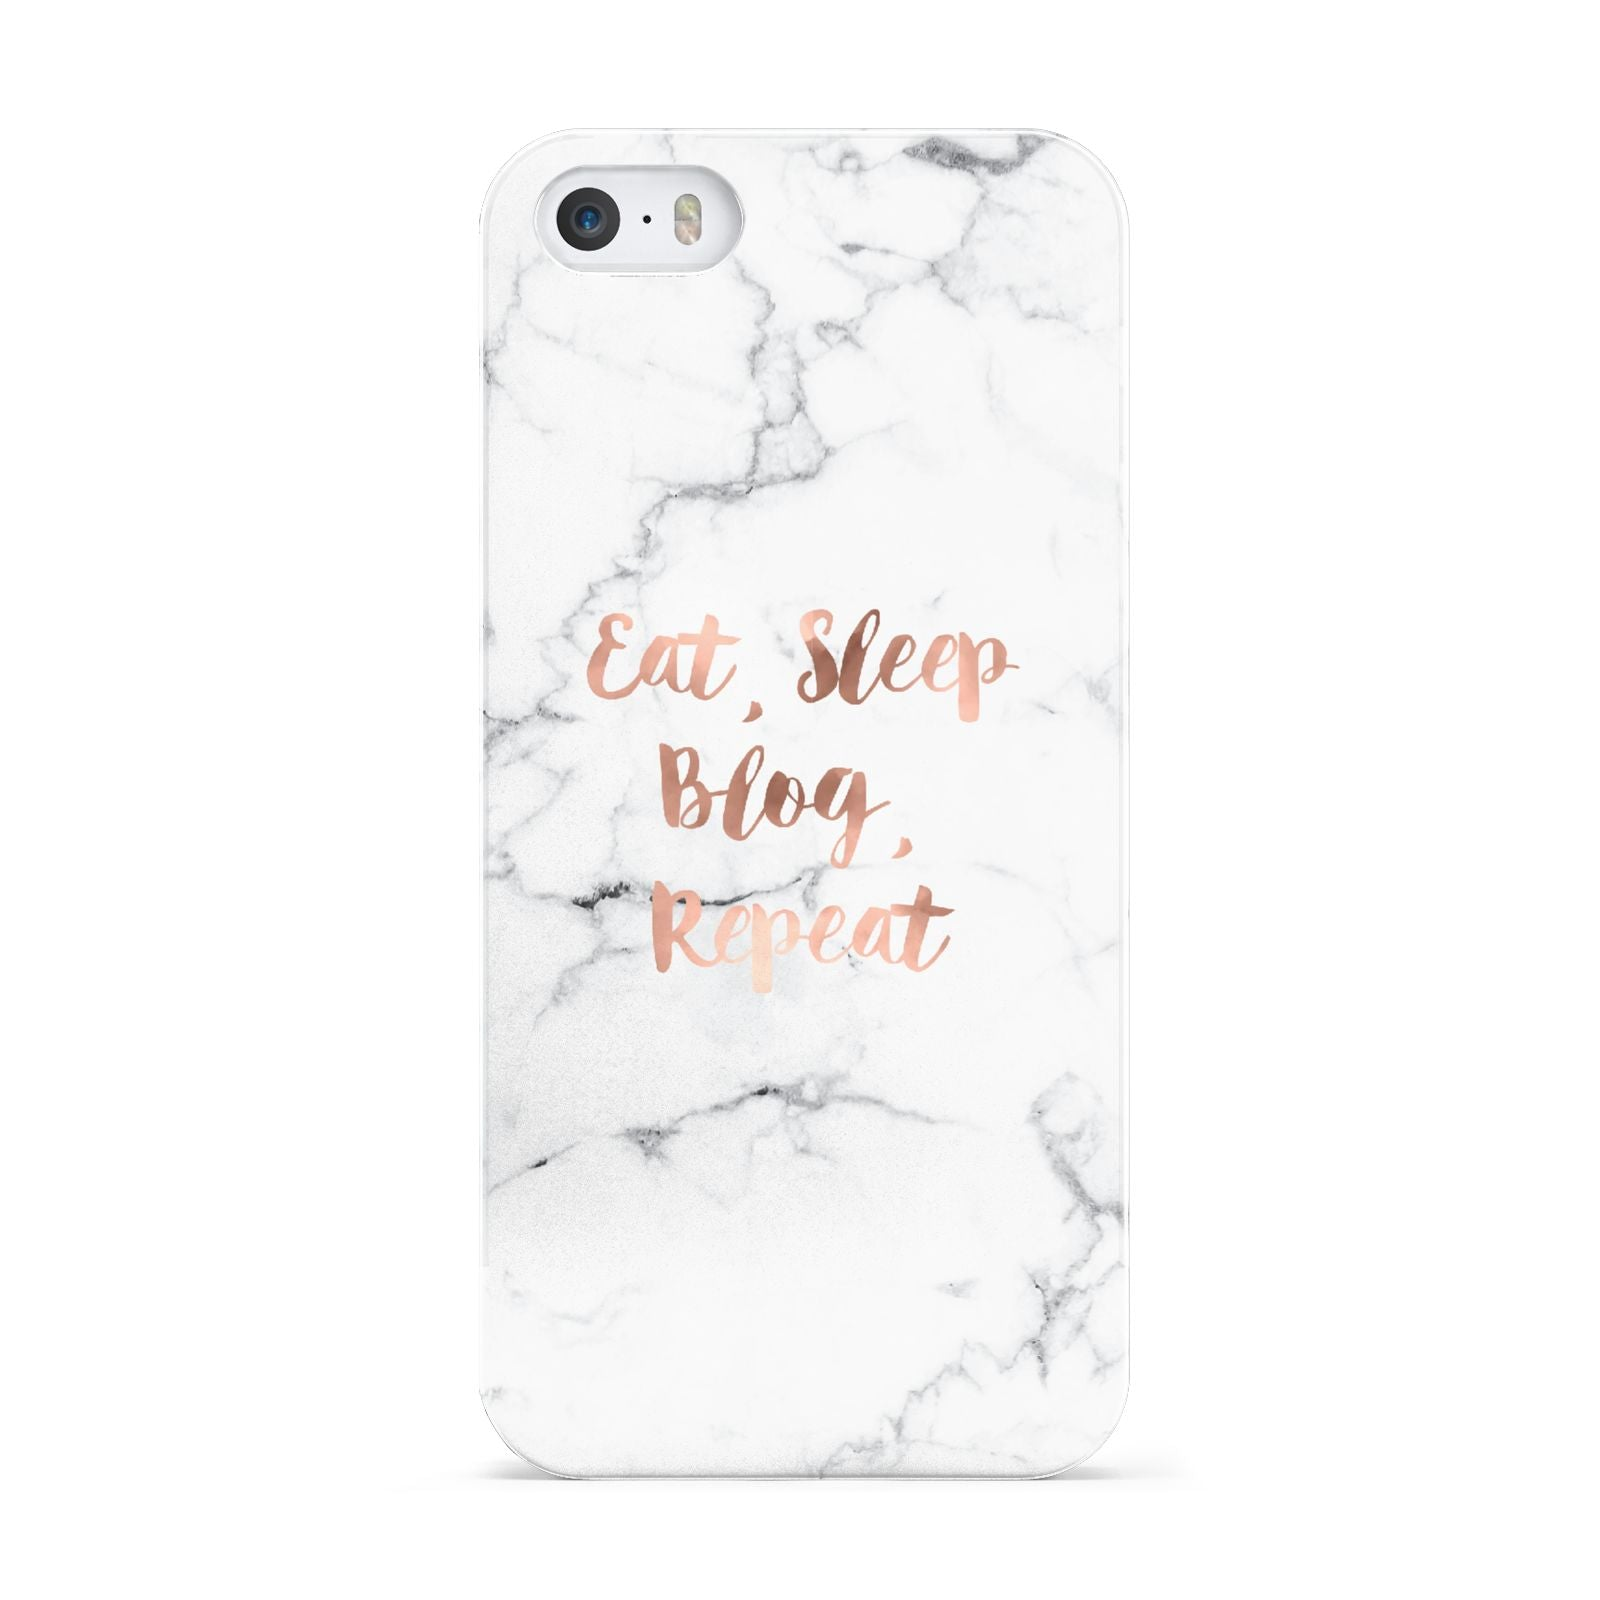 Eat Sleep Blog Repeat Marble Effect Apple iPhone 5 Case